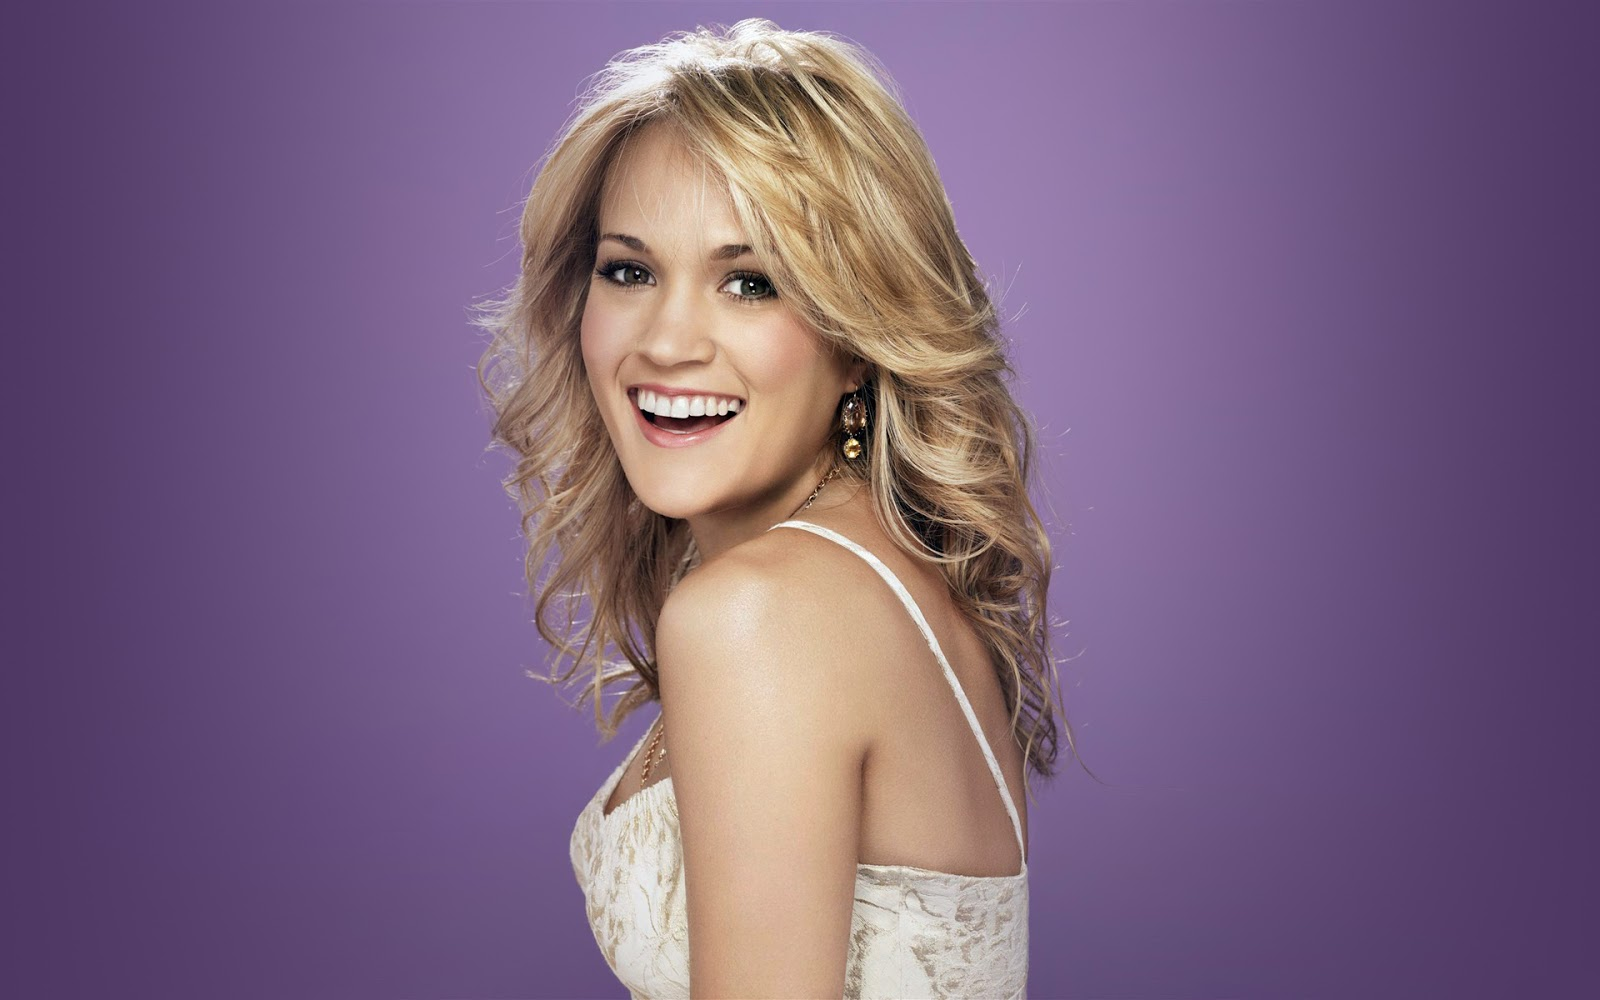 The wallpapers carrie underwood - Carrie underwood hd wallpaper ...